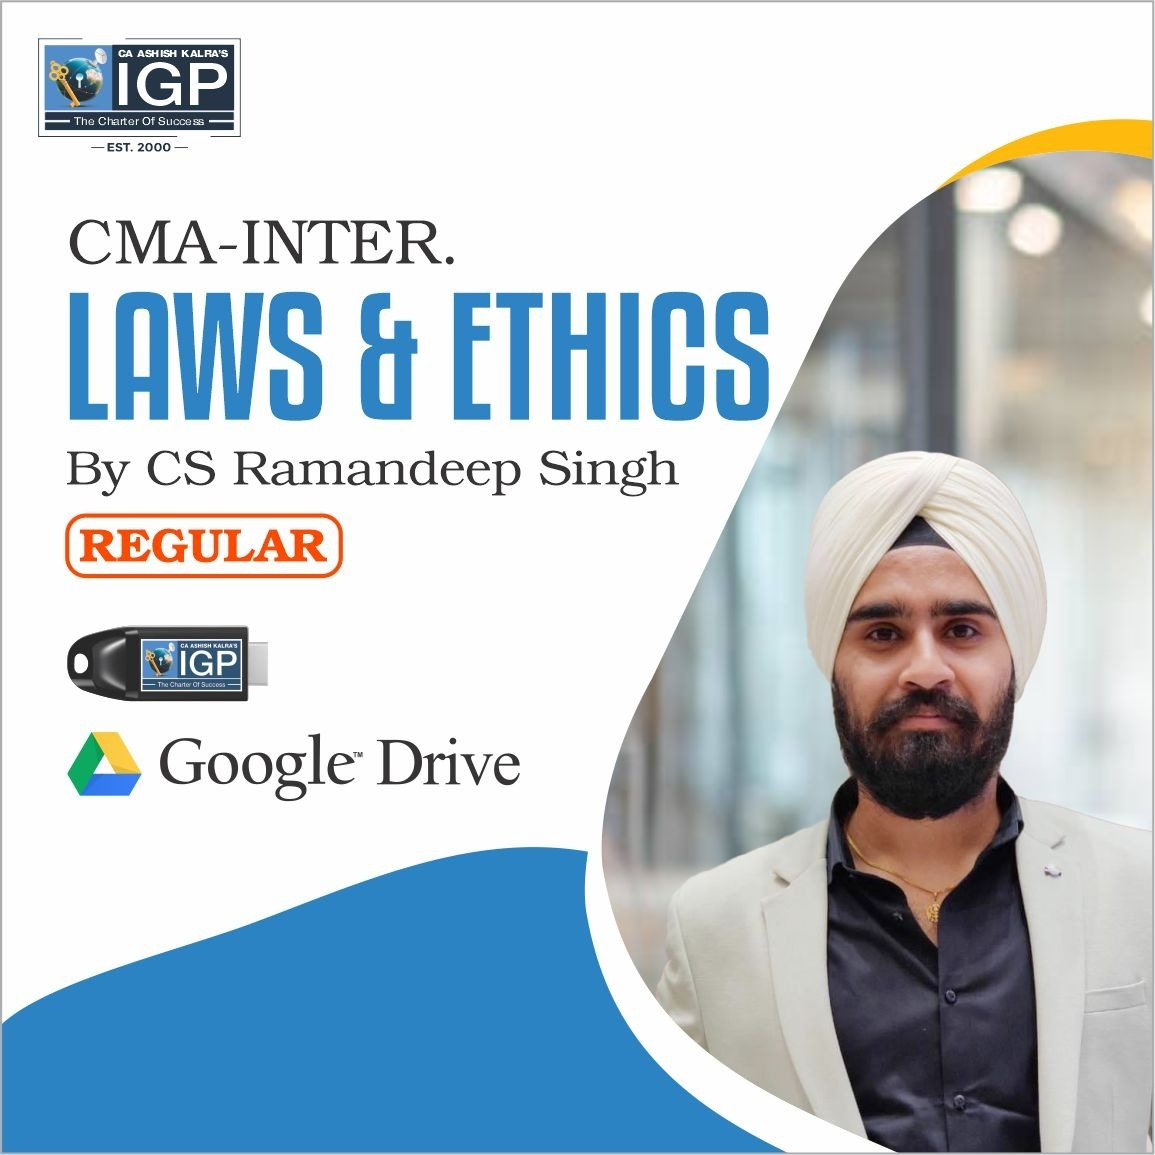 CMA Inter, New Course Laws and Ethics-CMA-Inter-Laws and Ethics- CS Ramandeep Singh